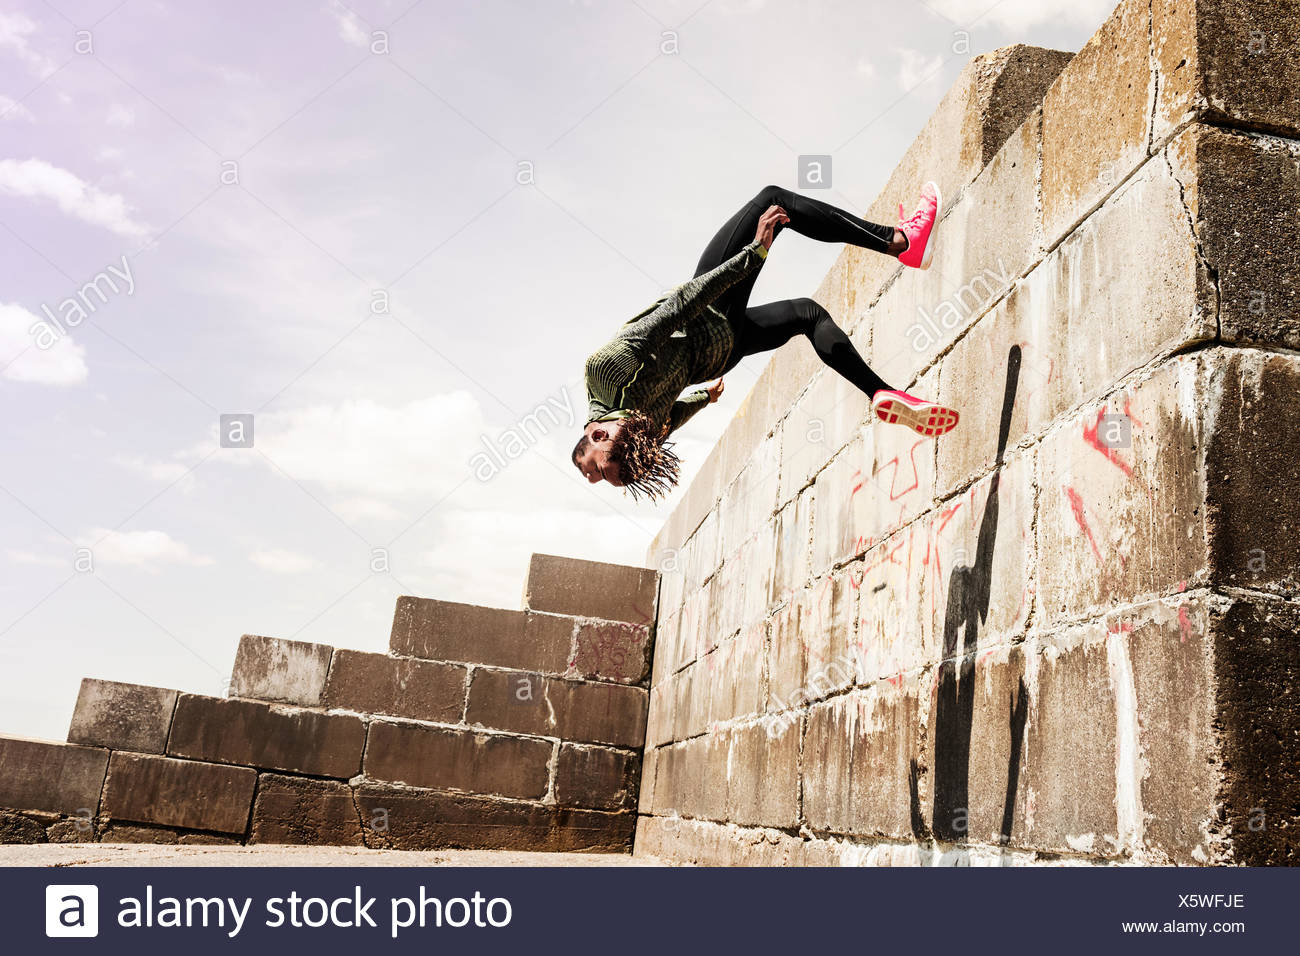 Young man, free running, outdoors, somersaulting from side of wall - Stock Image